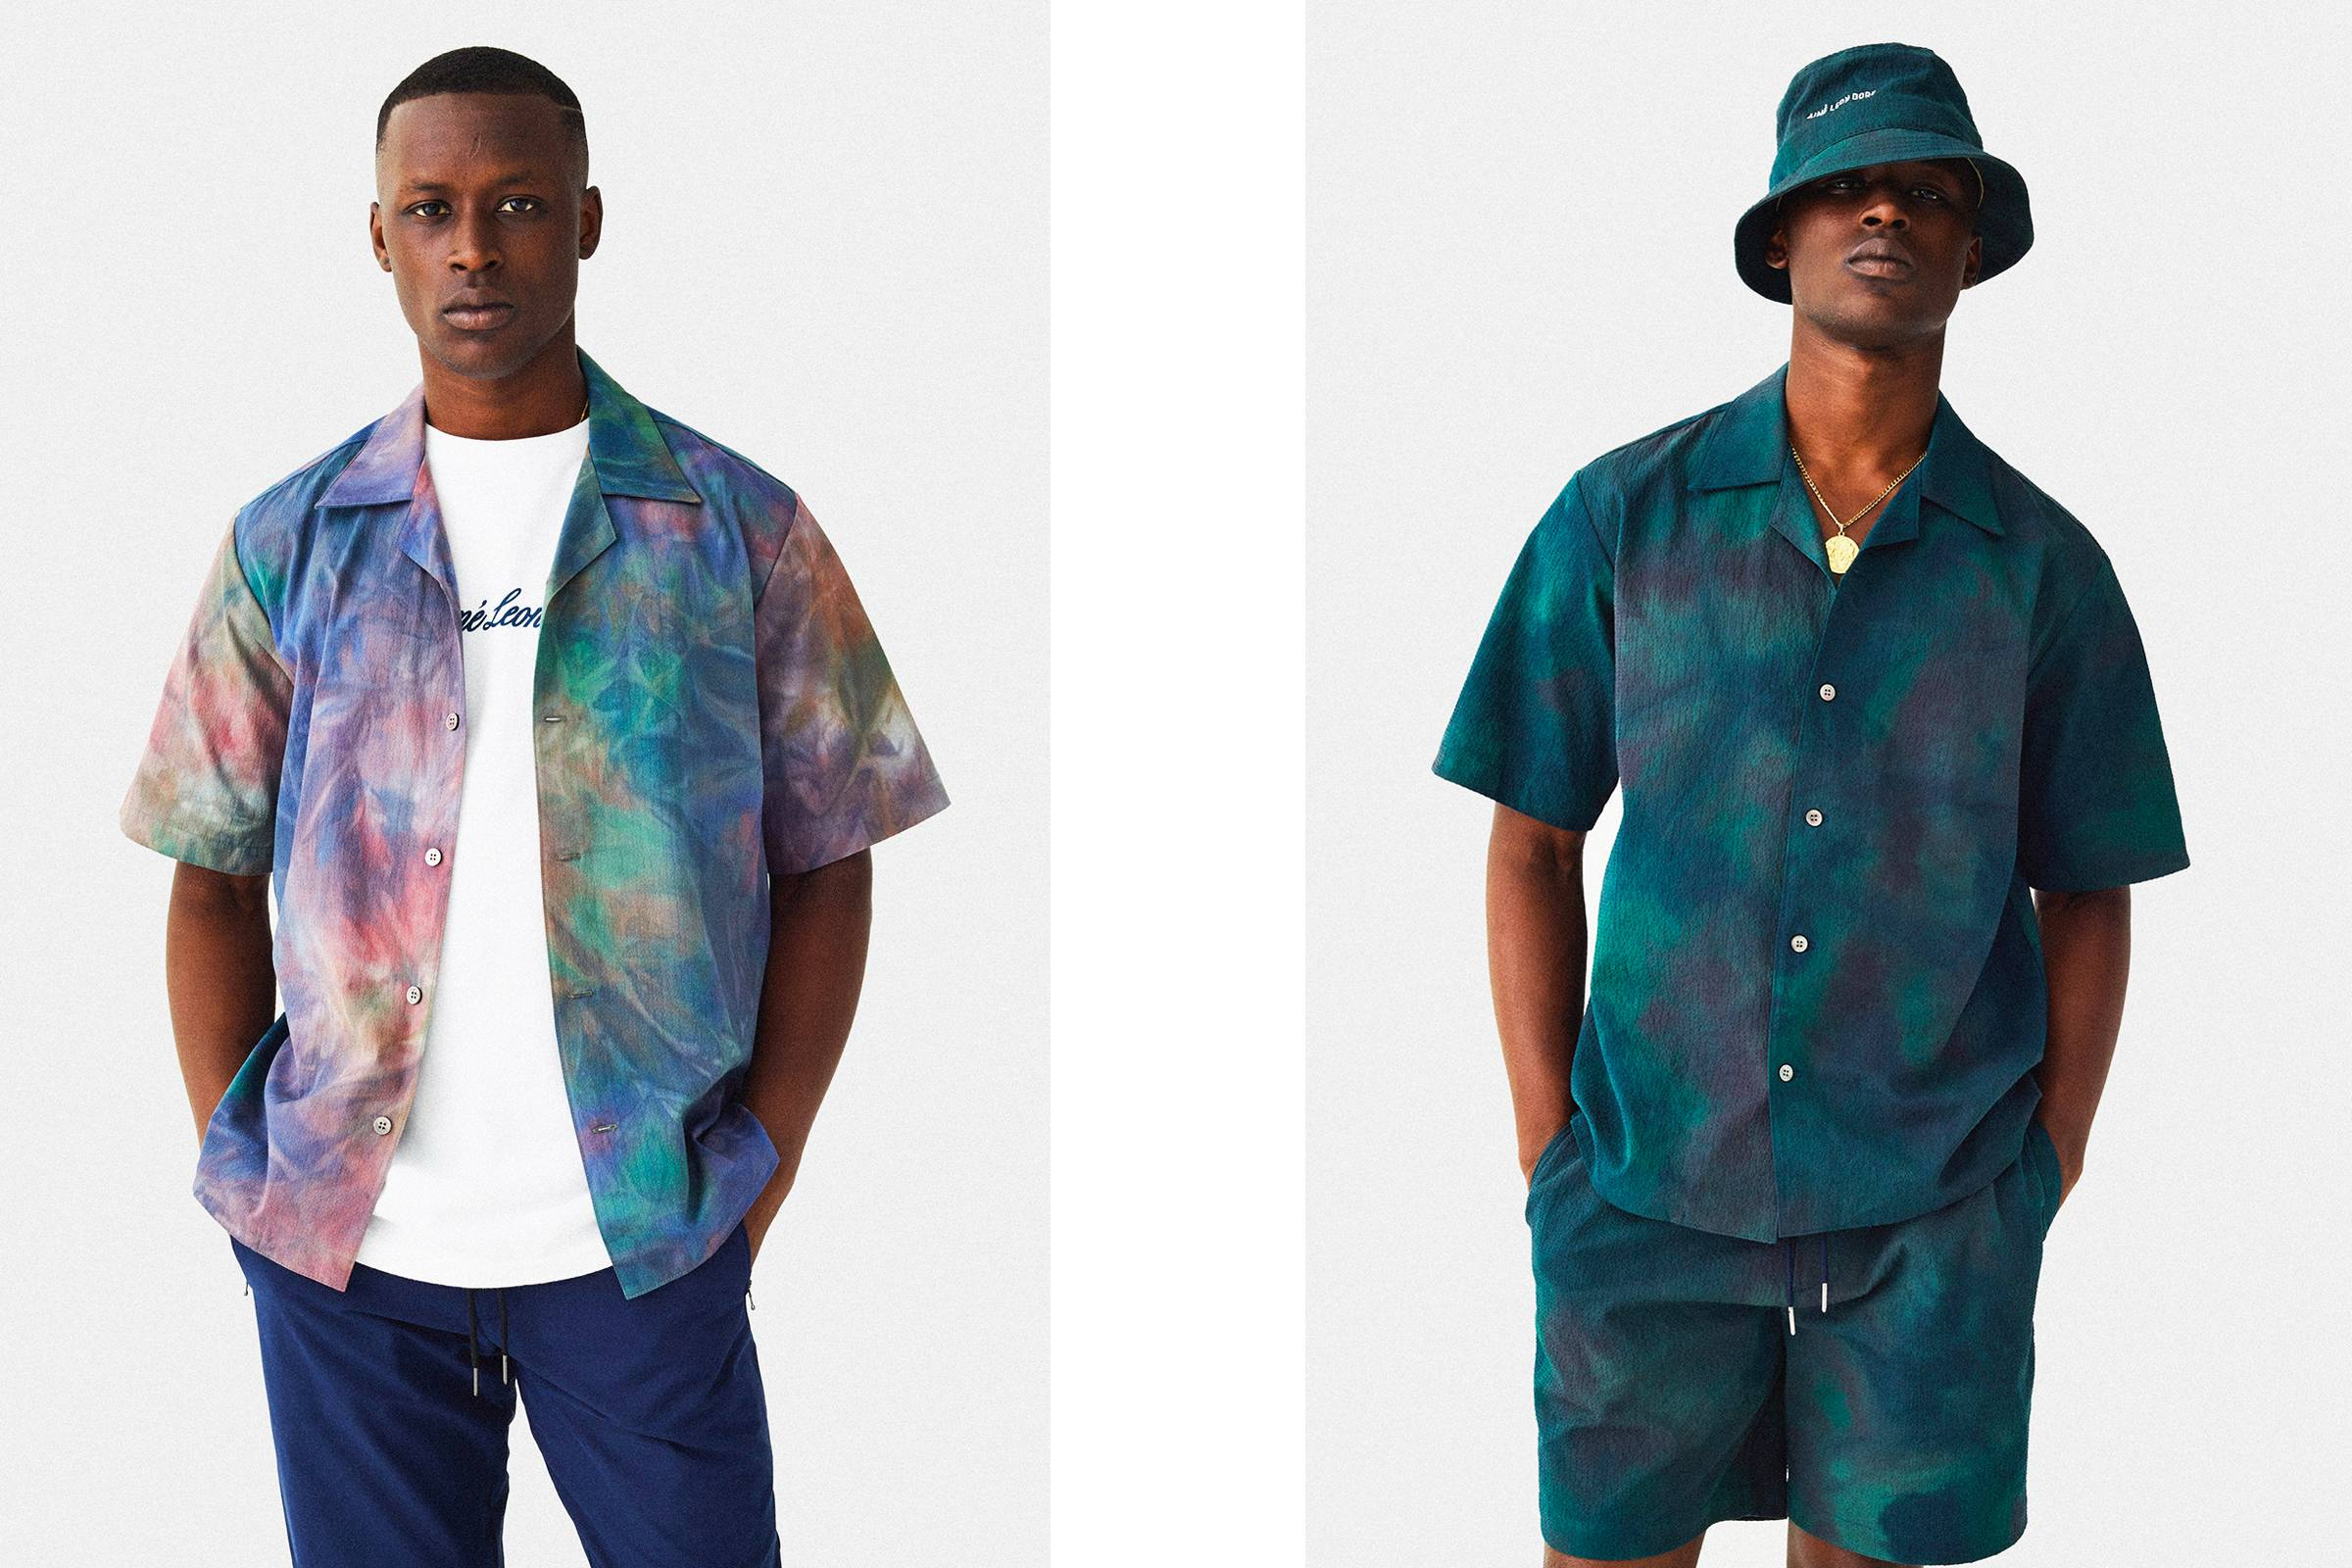 Looks from Aimé Leon Dore's Spring/Summer 2018 collection